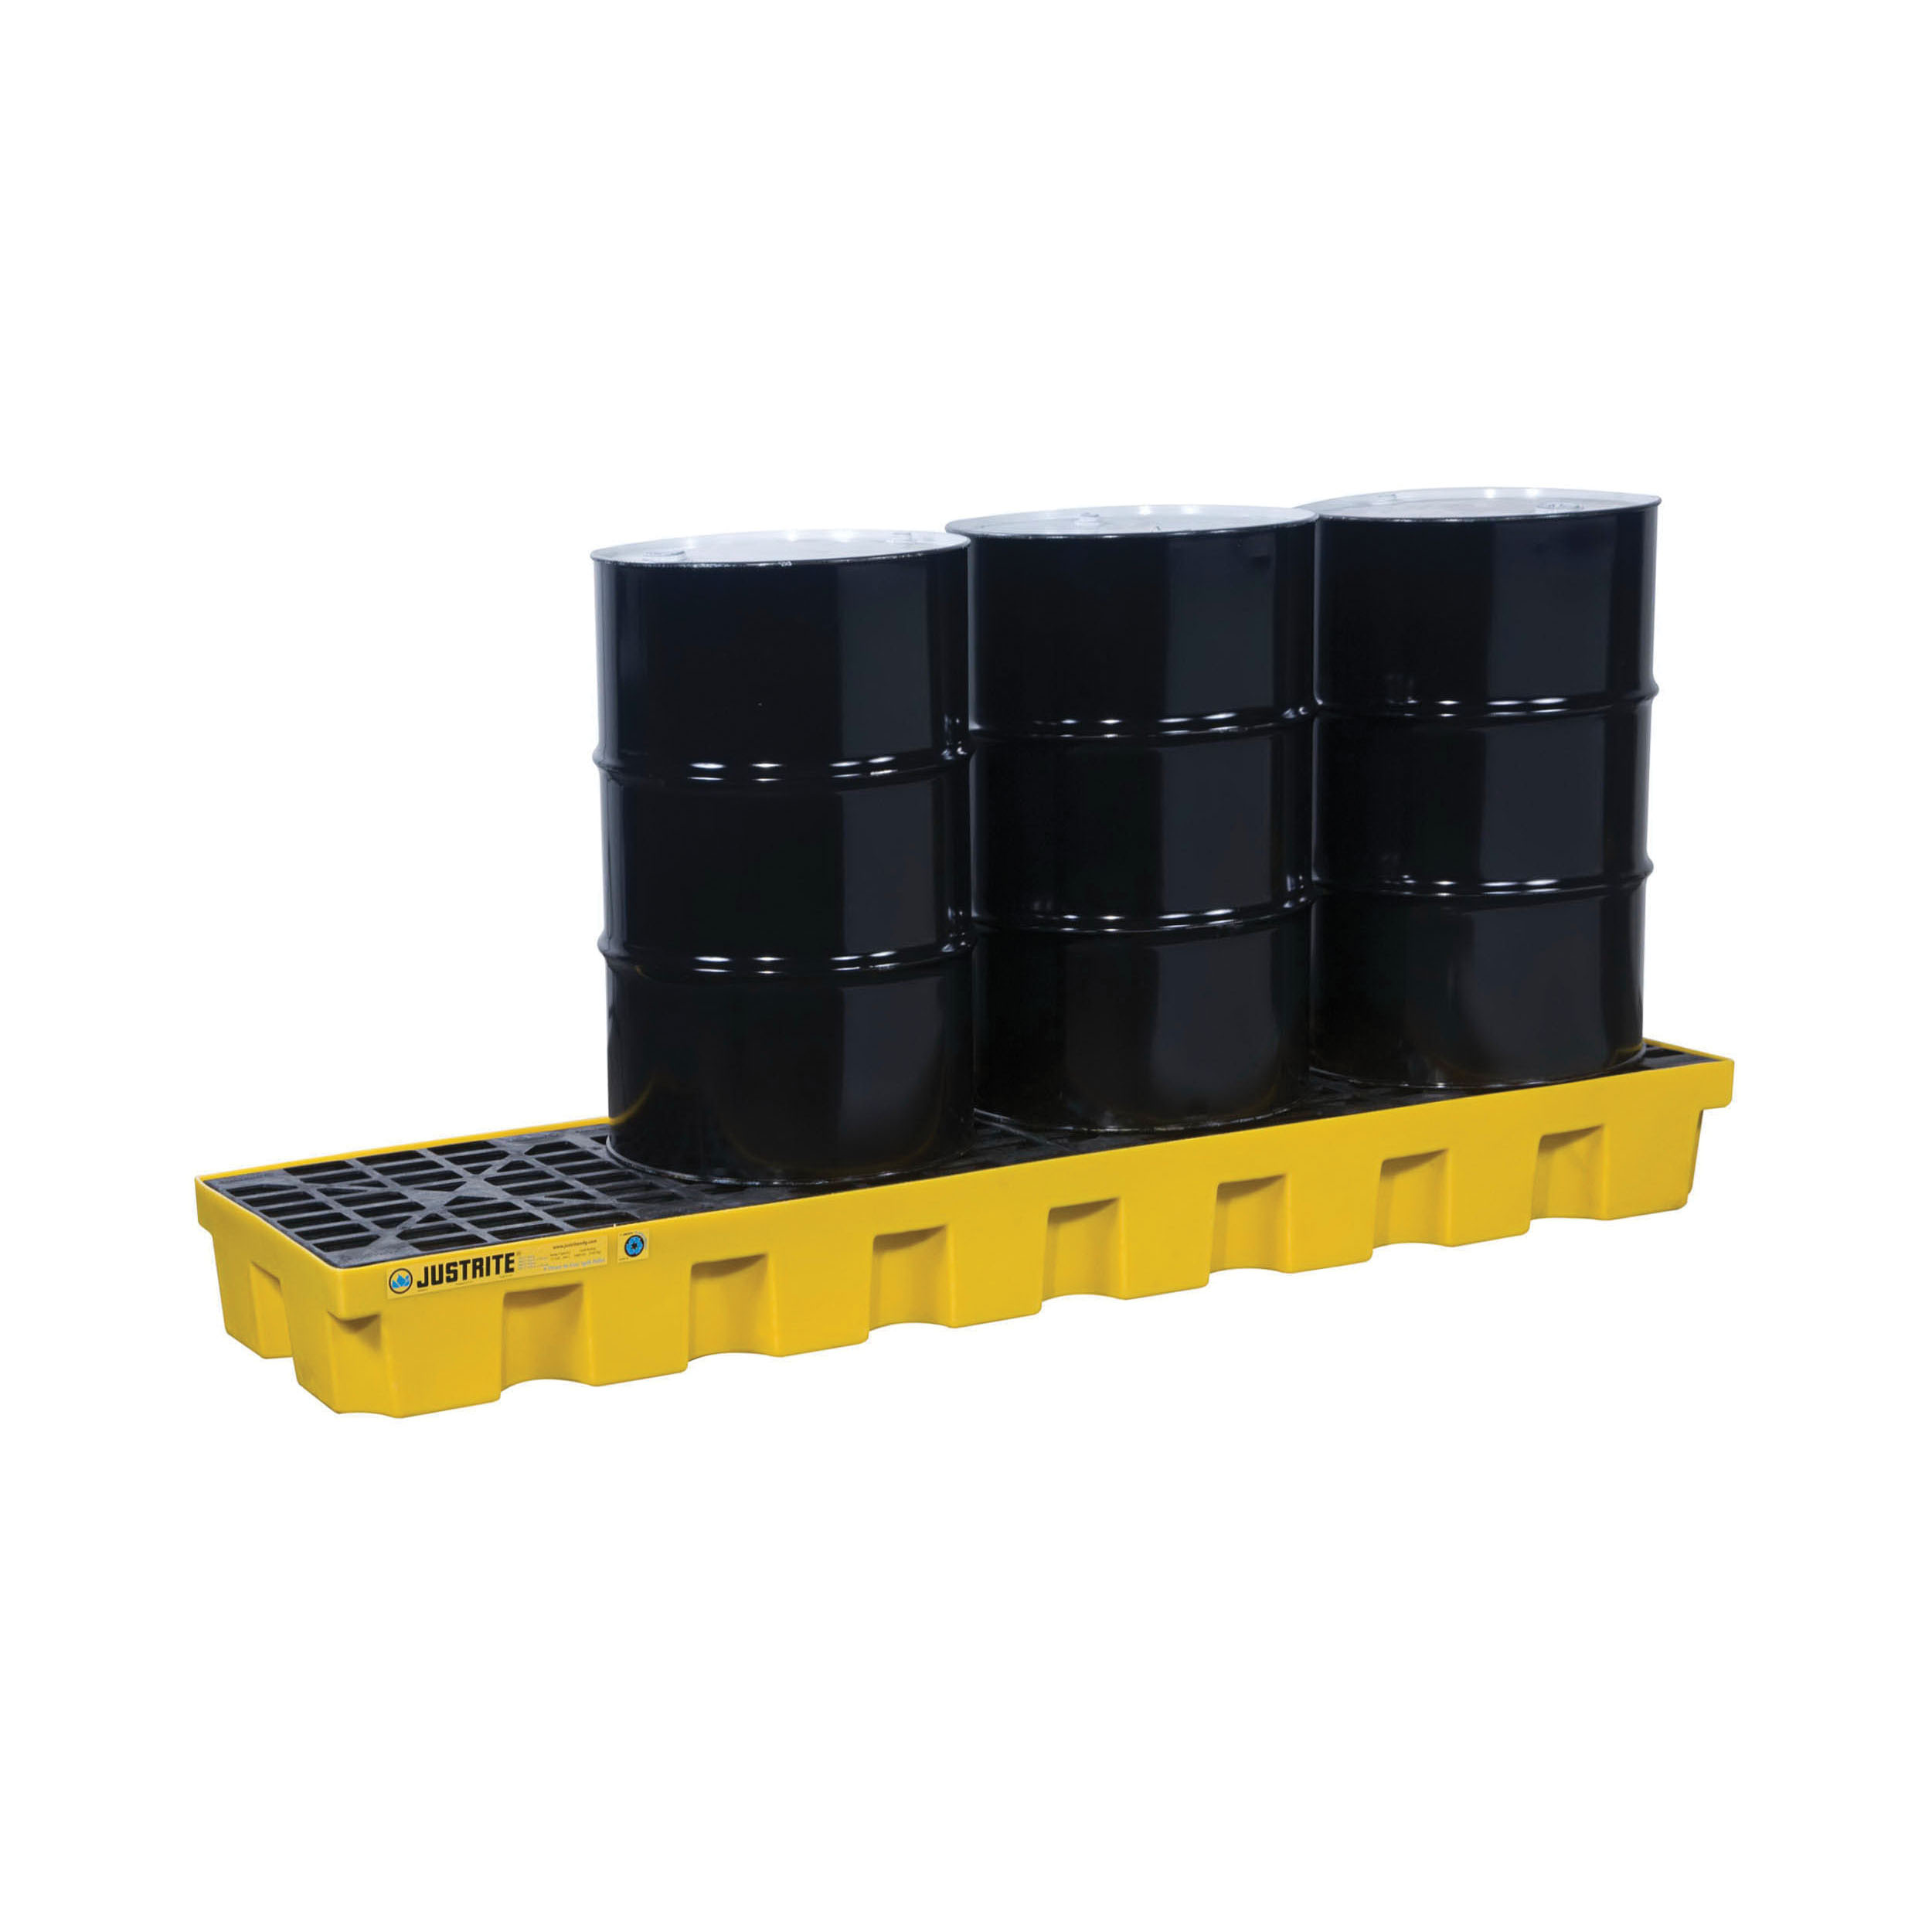 Justrite® 28632 EcoPolyBlend™ Spill Control Pallet With Drain, 4 Drums, 75 gal Spill, 5000 lb Load, 35% Recycled Polyethylene